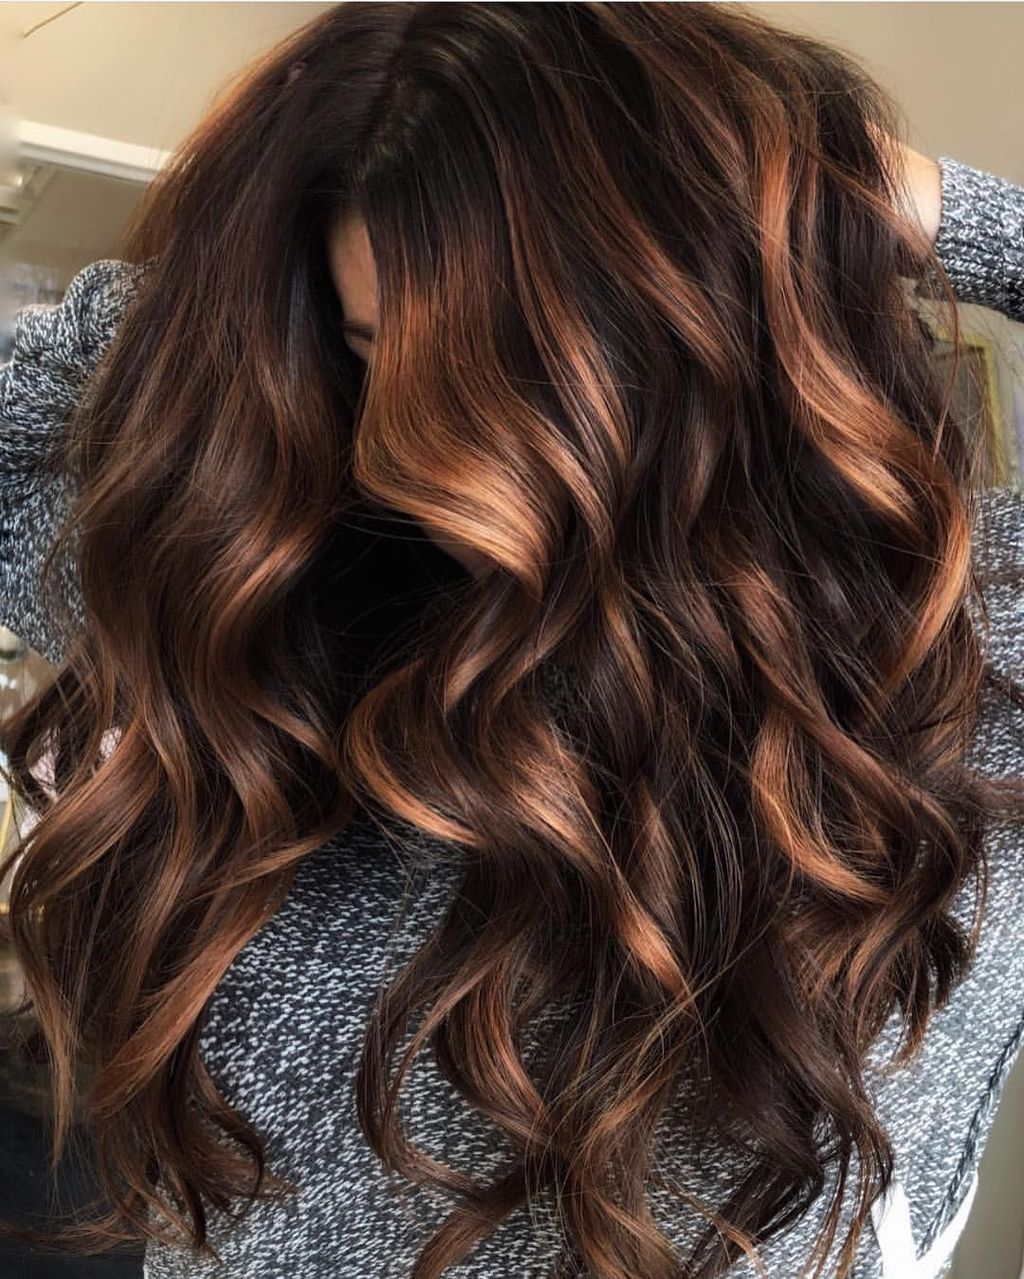 40 Beautiful Summer Hair Color Ideas For Brunettes Beautiful Brunettes Color Hair Ideas Summer In 2020 Summer Hair Color Brunette Hair Color Hair Color Chocolate